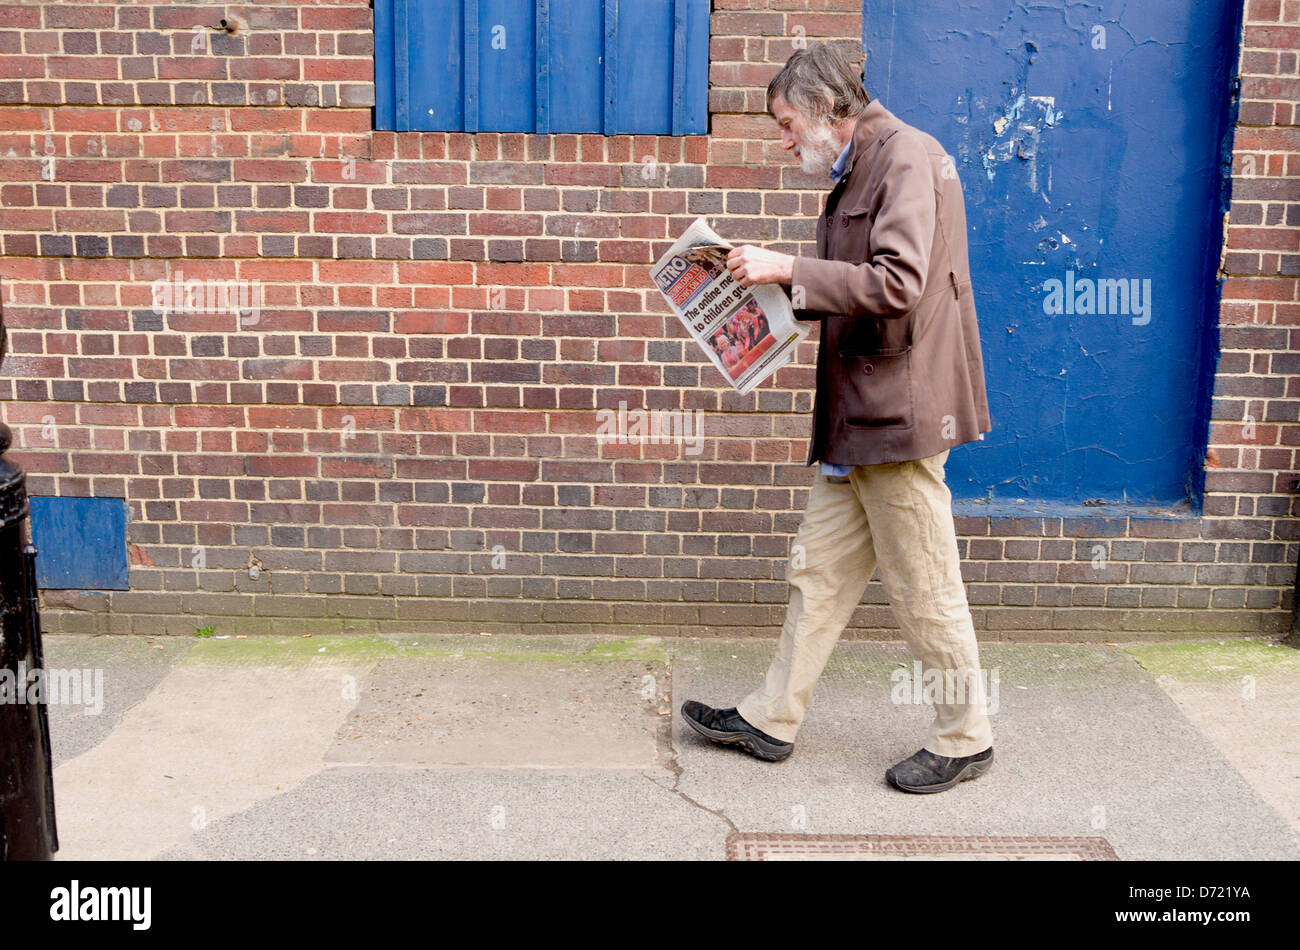 Man walking whilst reading a newspaper. Stock Photo